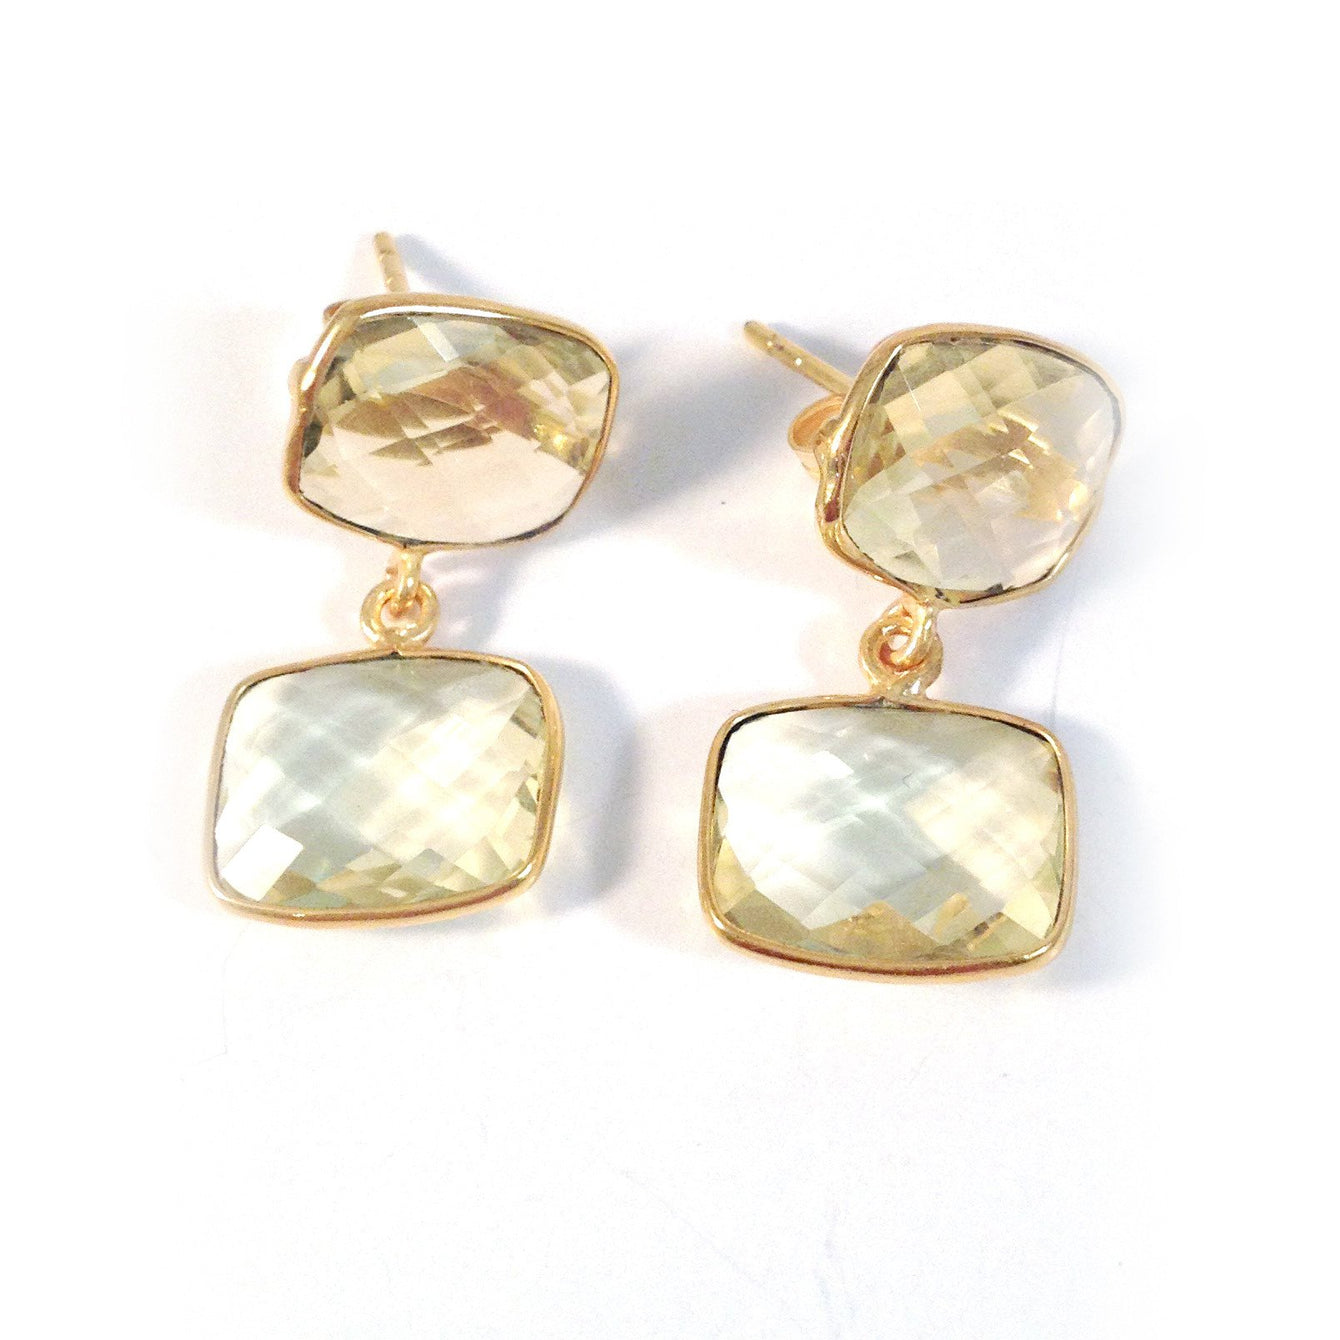 24k Gold Whitten Genuine Gemstone Post Earrings-Women - Jewelry - Earrings-ADDISON WEEKS-Lemon Topaz-Peccadilly